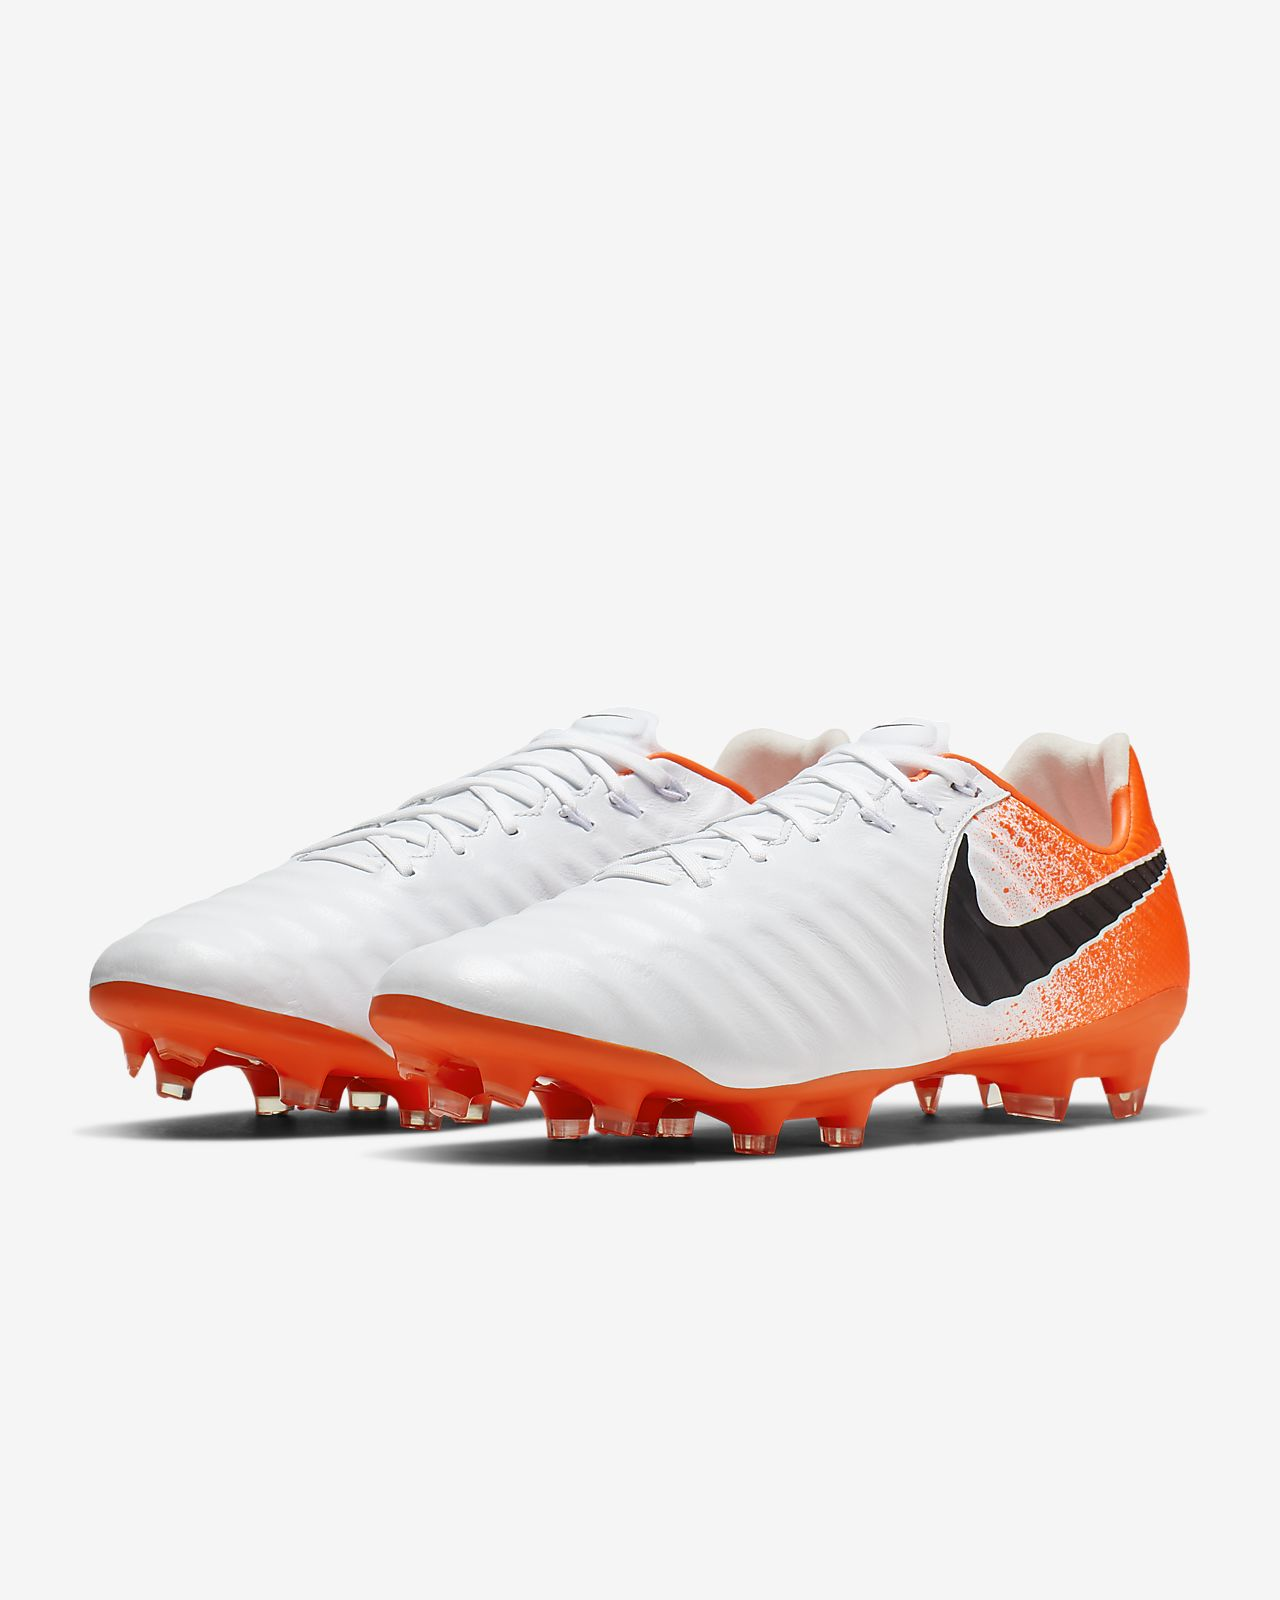 9151cc1f0 Nike Legend 7 Pro FG Firm-Ground Soccer Cleat. Nike.com